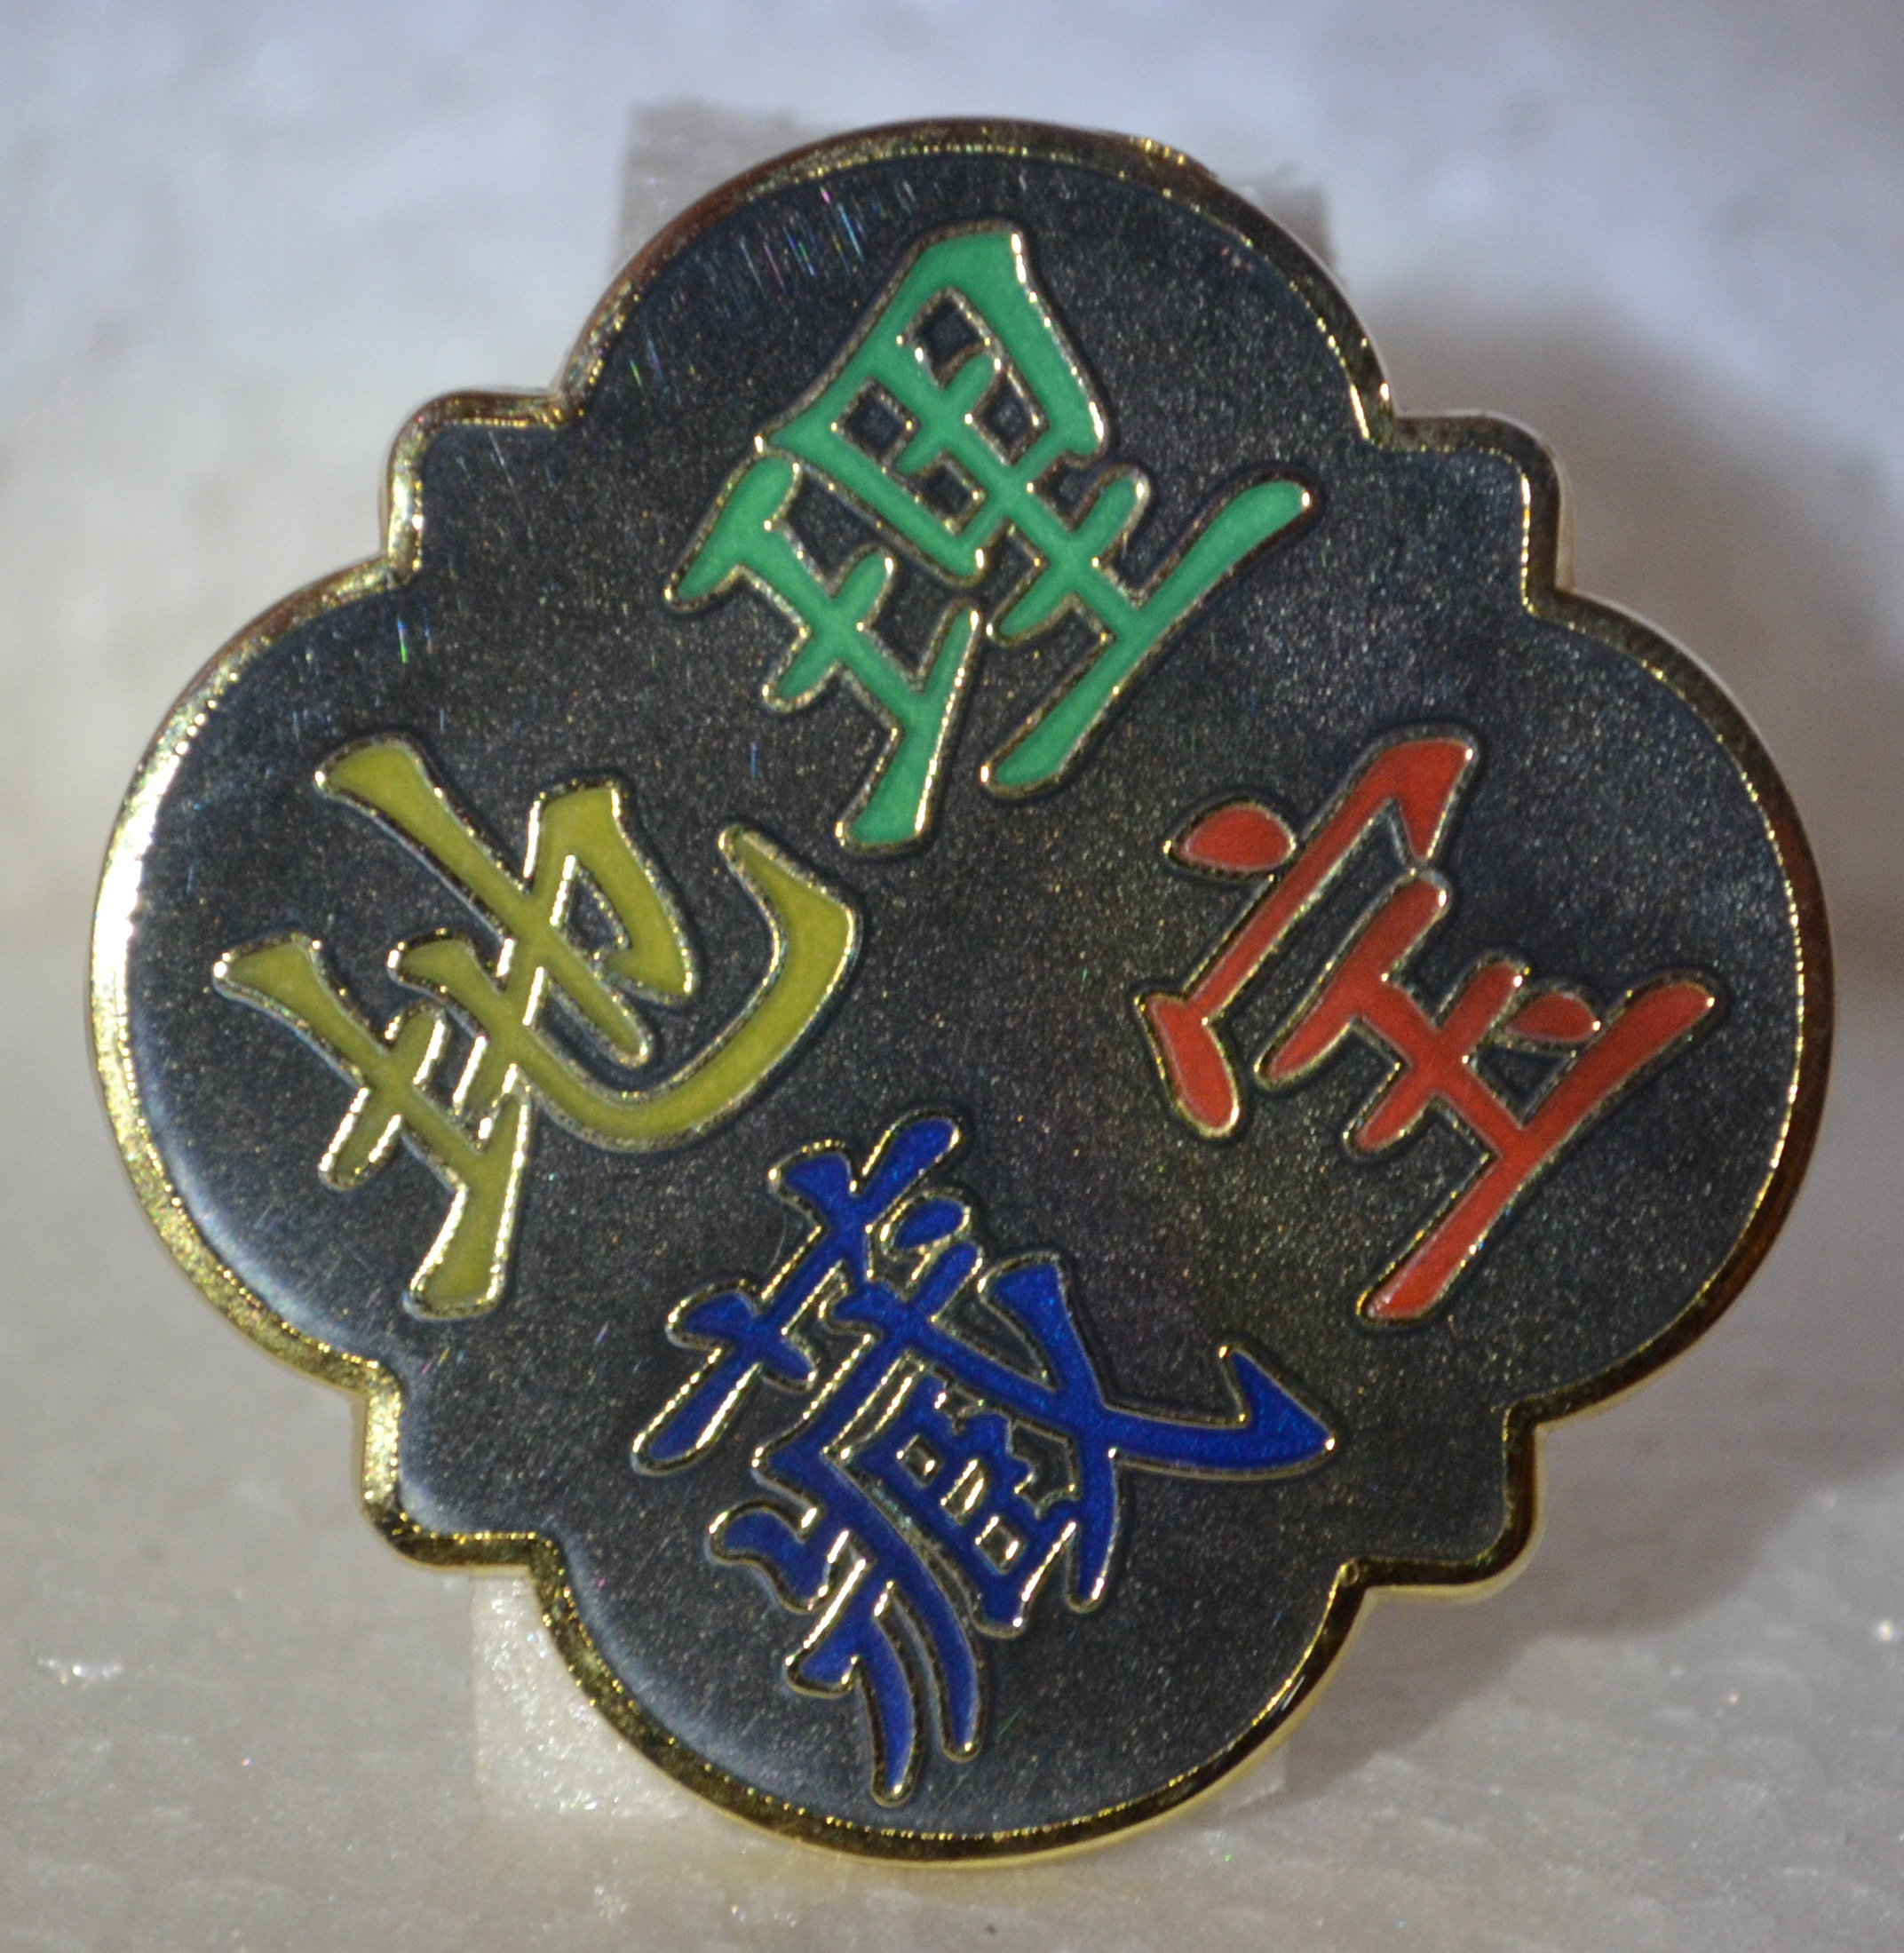 di li cang bao Geocoin - XLE polished gold / translucent colors